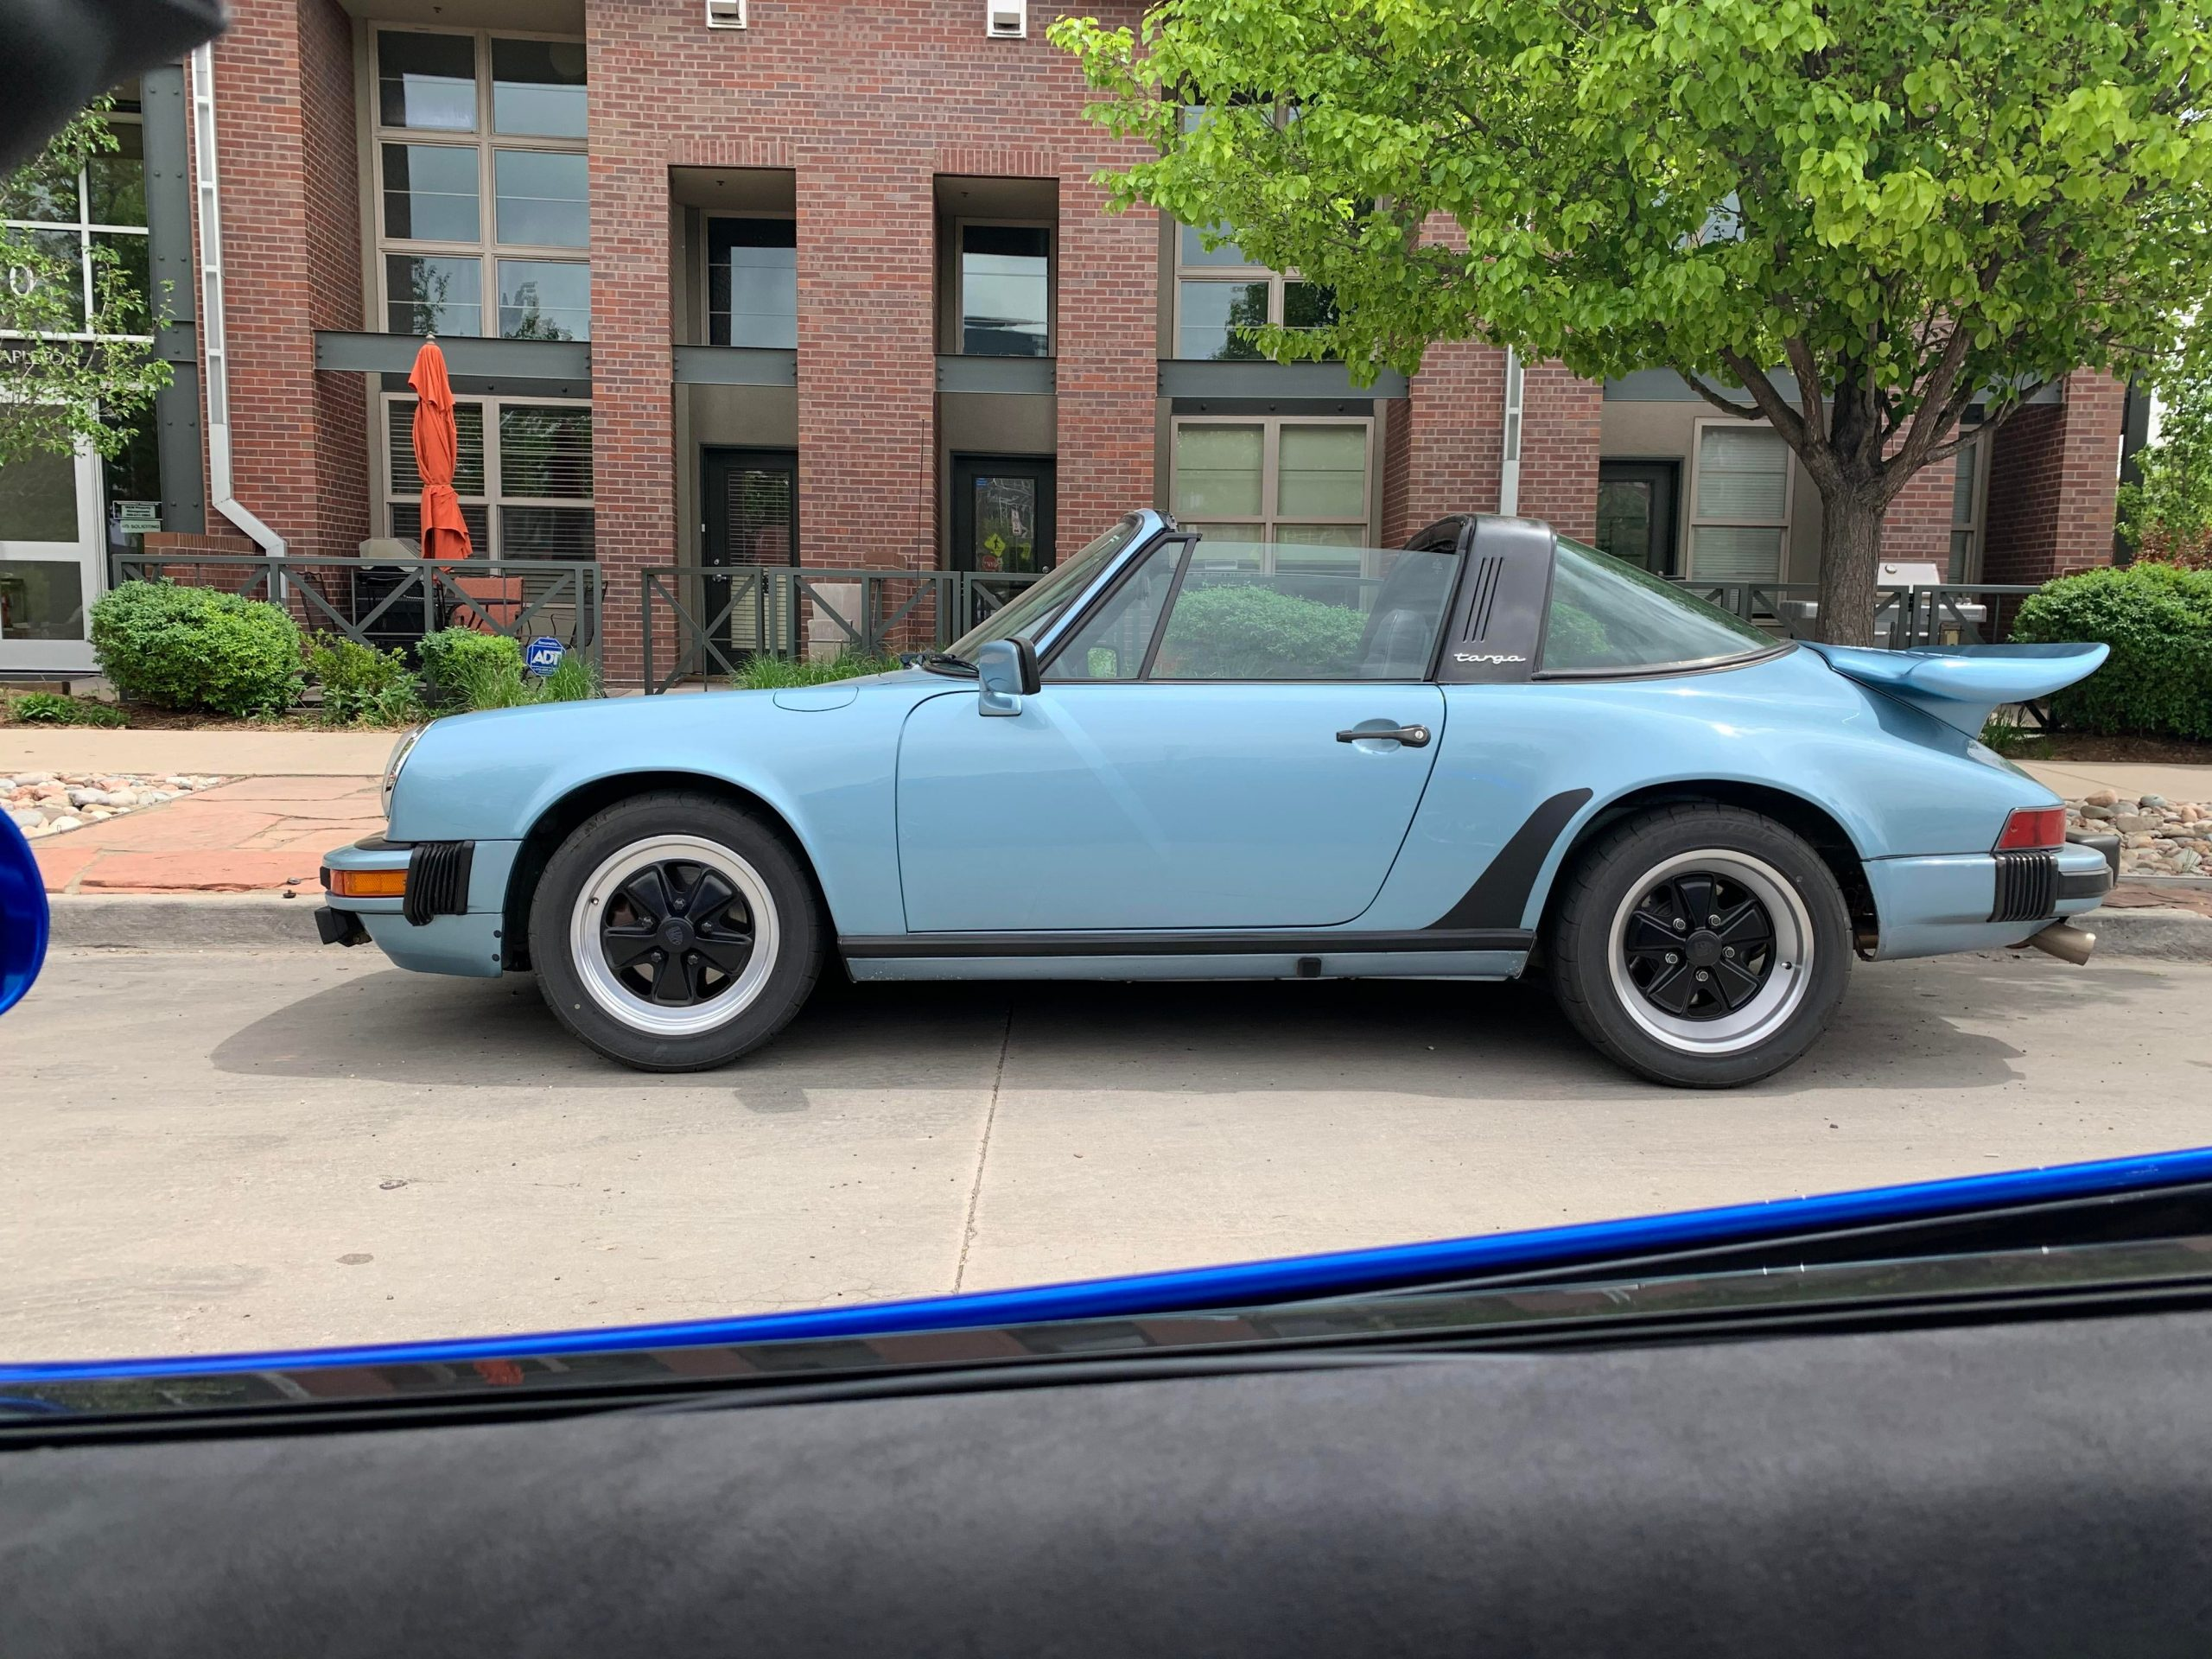 Air cooled, whale tail, targa. Beauty.